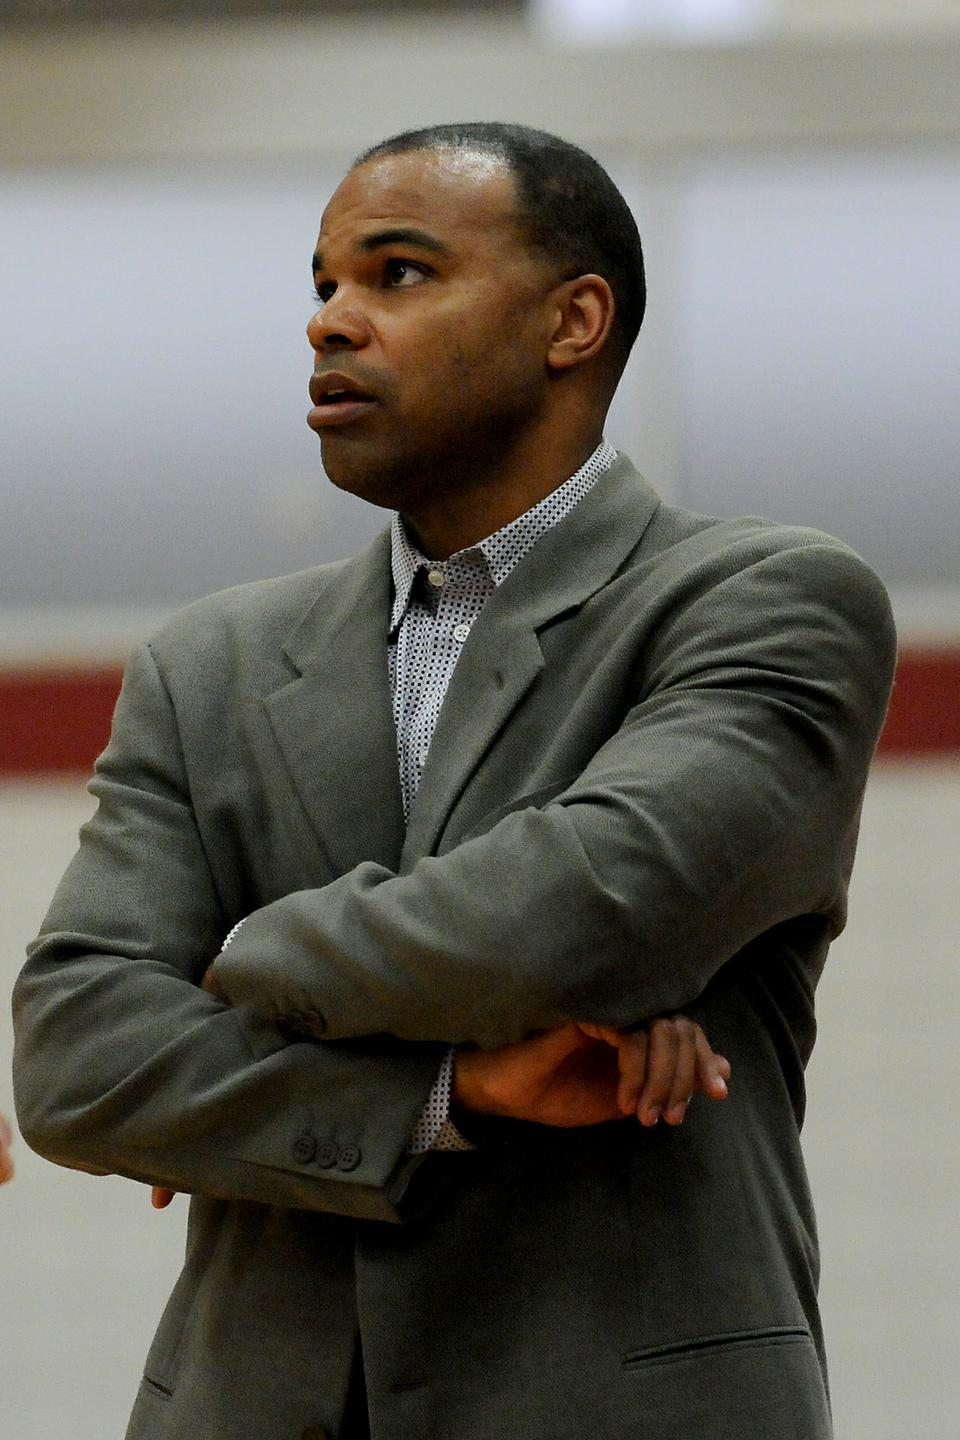 Harvard coach Tommy Amaker will remain at the helm for the Crimson, he announced Tuesday.